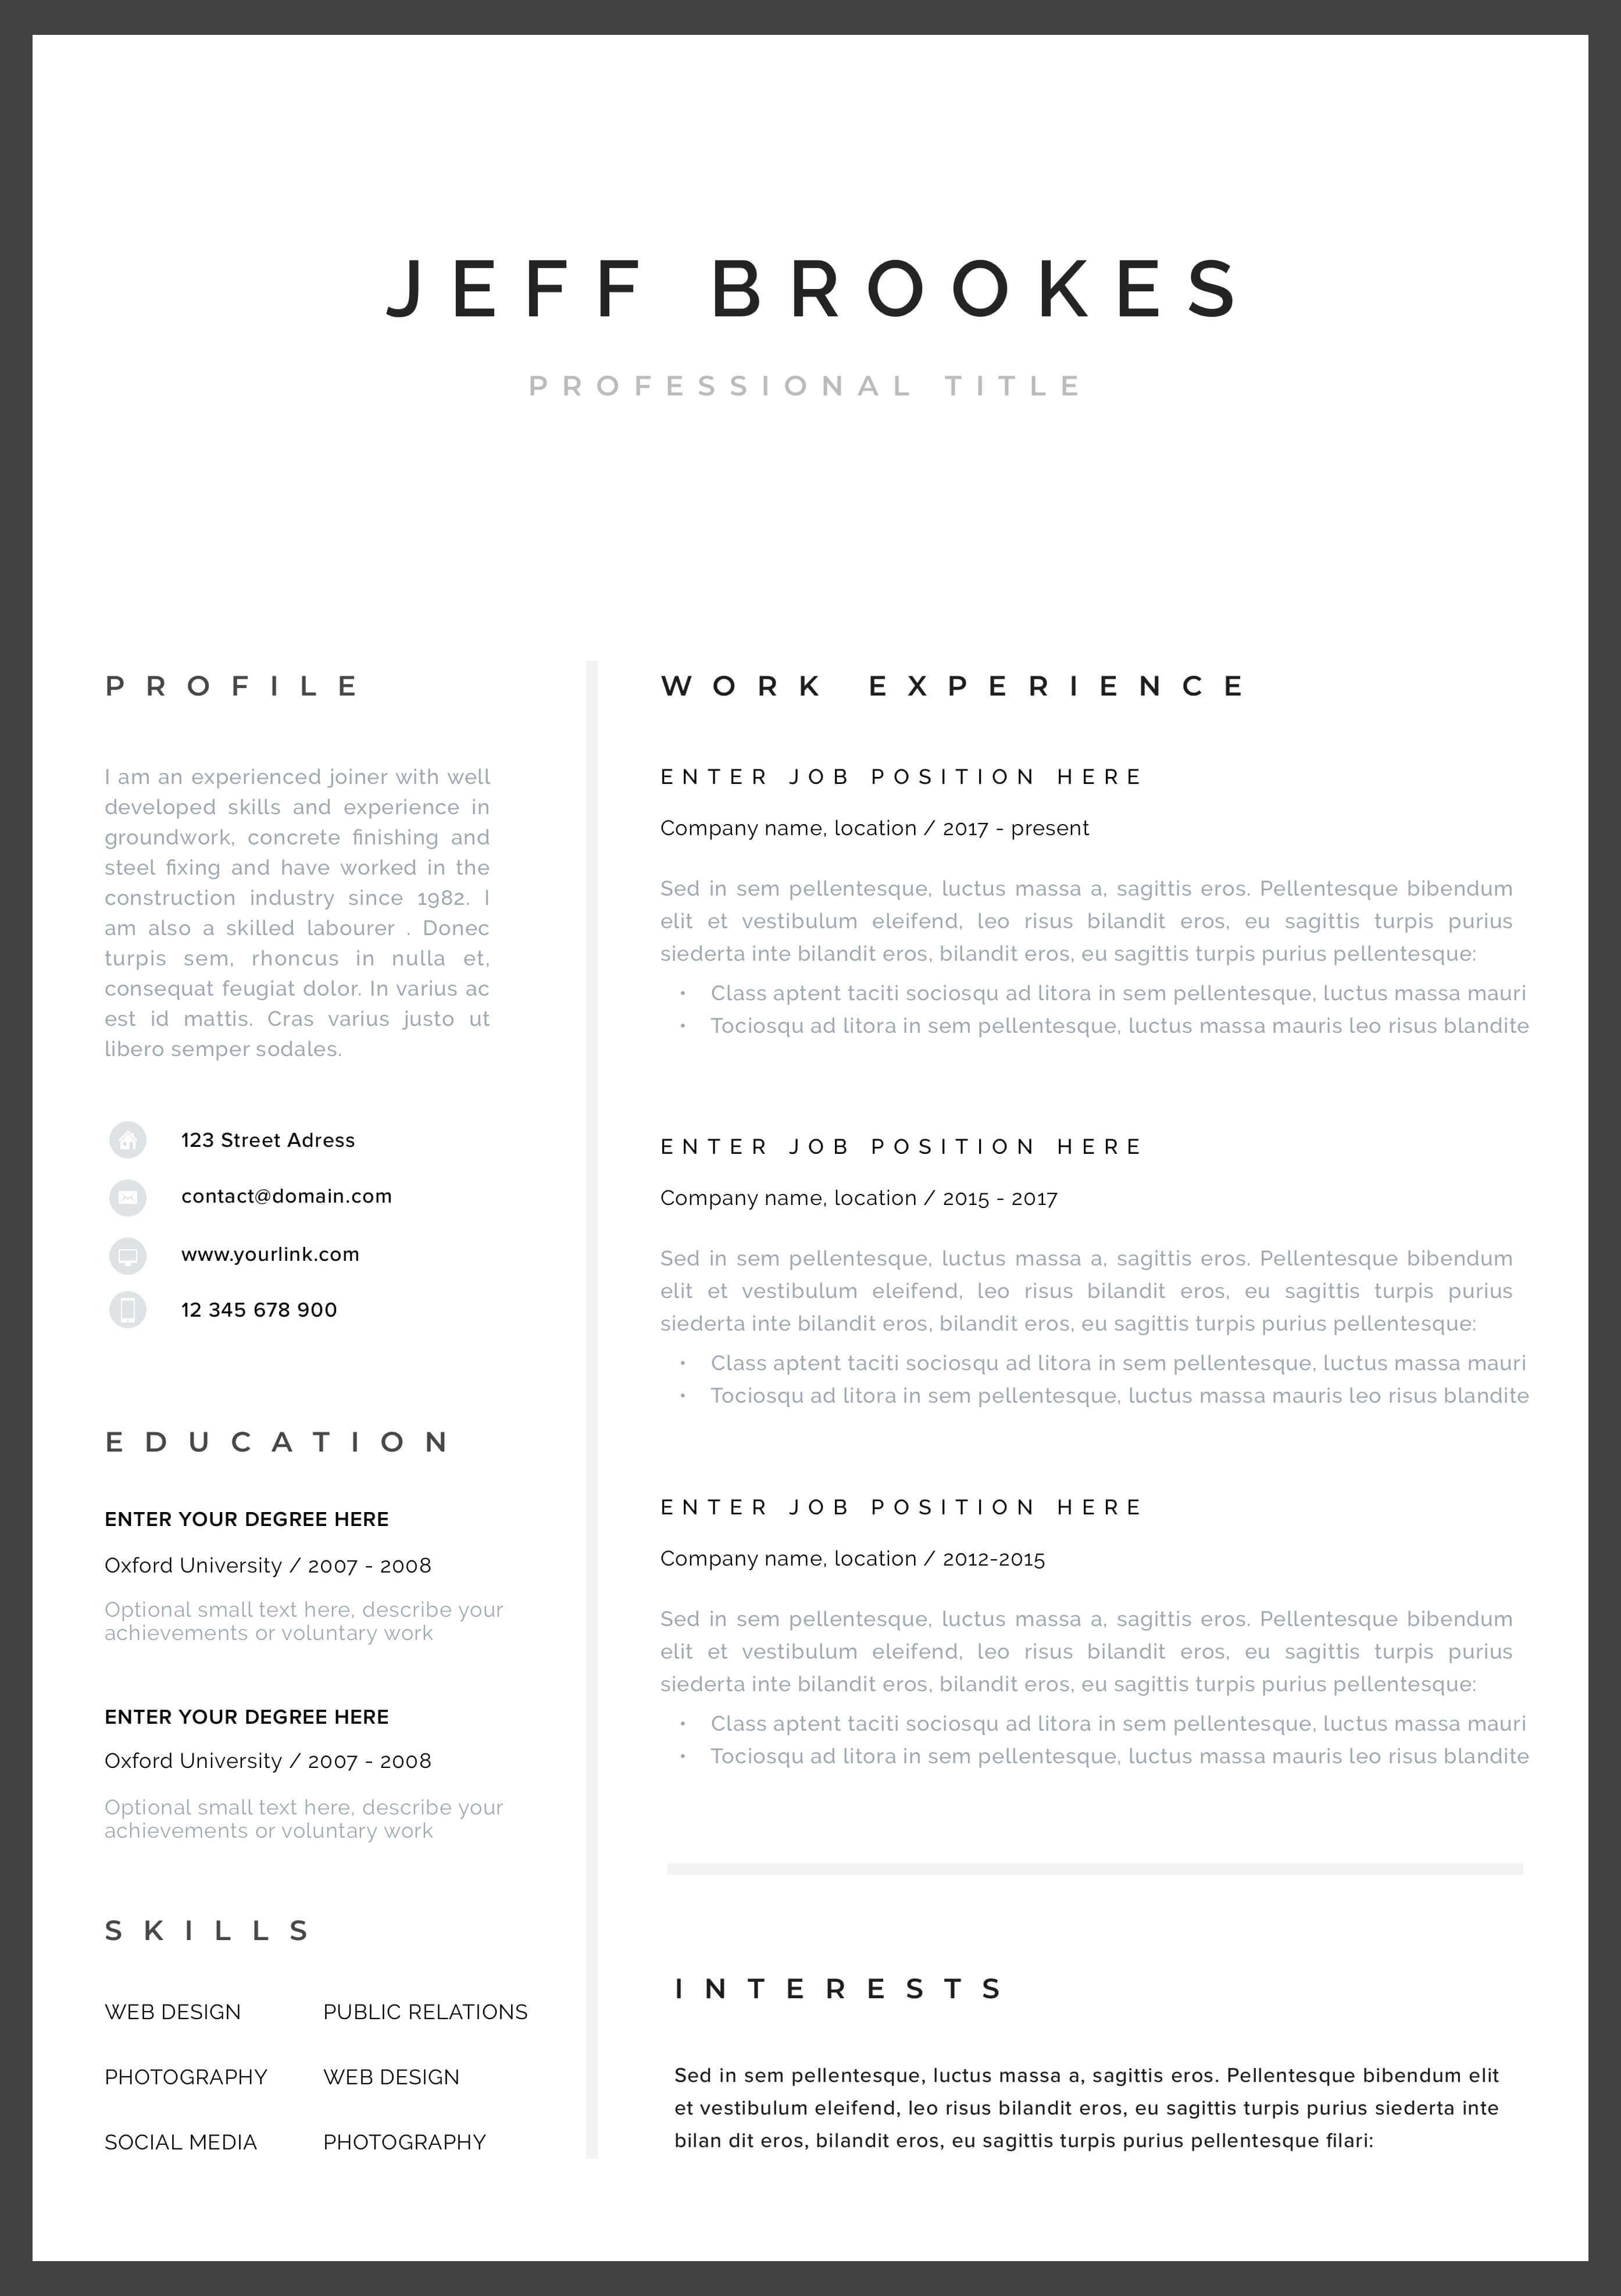 modern resume template cv template, cover letter headline for marketing school leaver south africa sales specialist